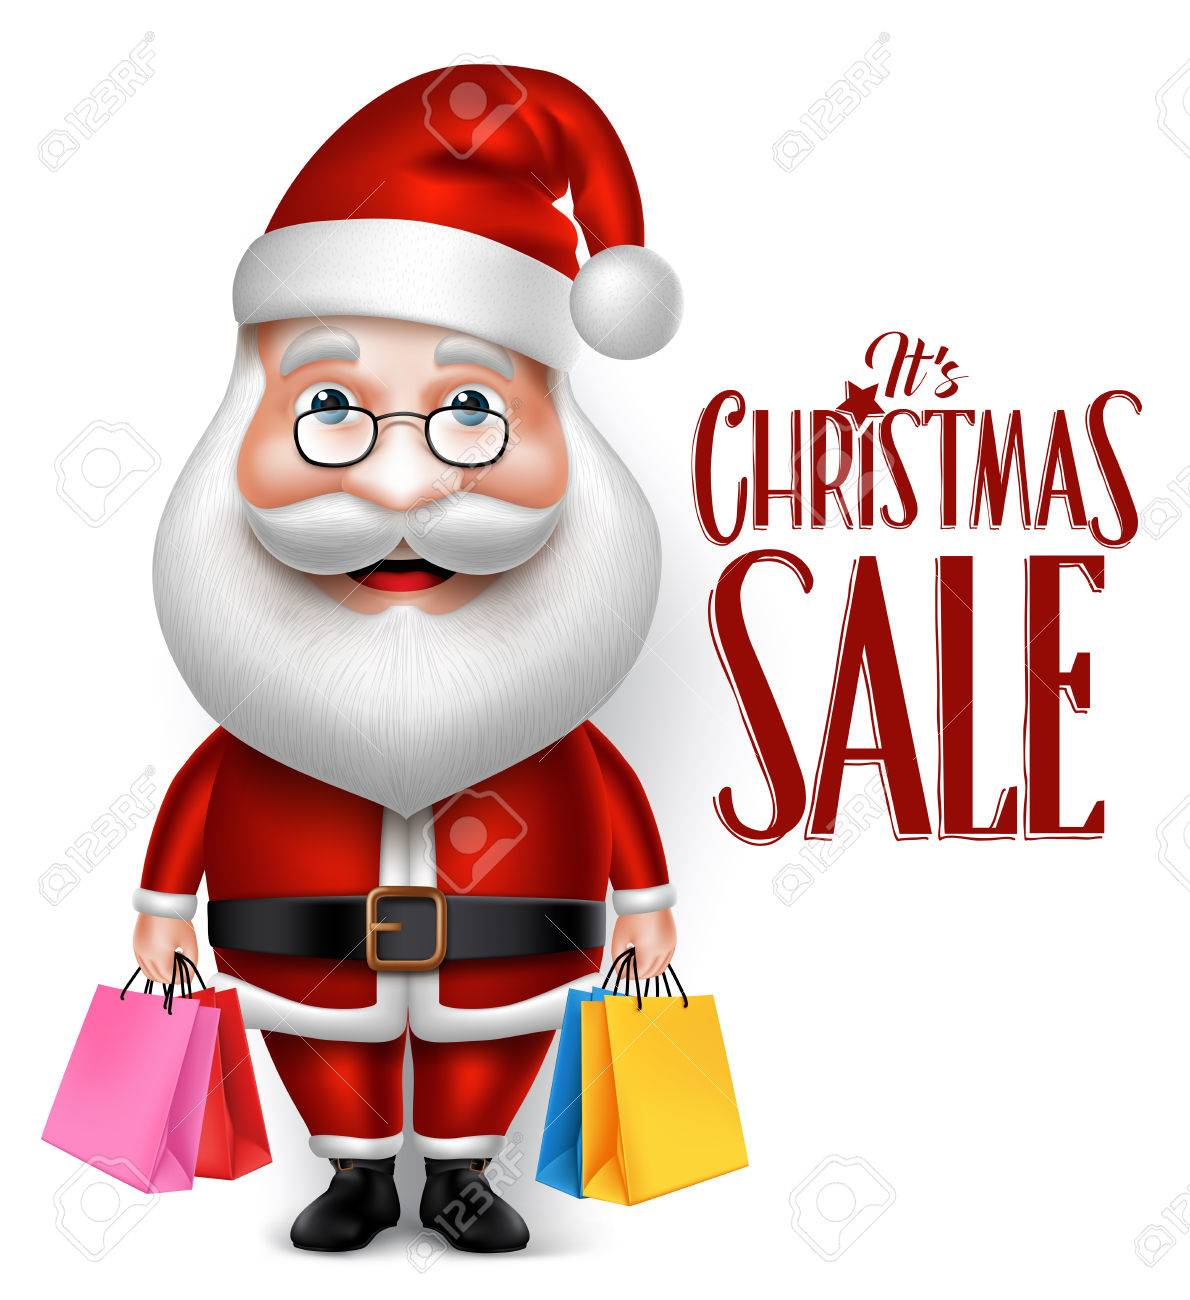 3D Realistic Santa Claus Cartoon Character Holding Shopping Bags Isolated in White Background. Vector Illustration - 45509064